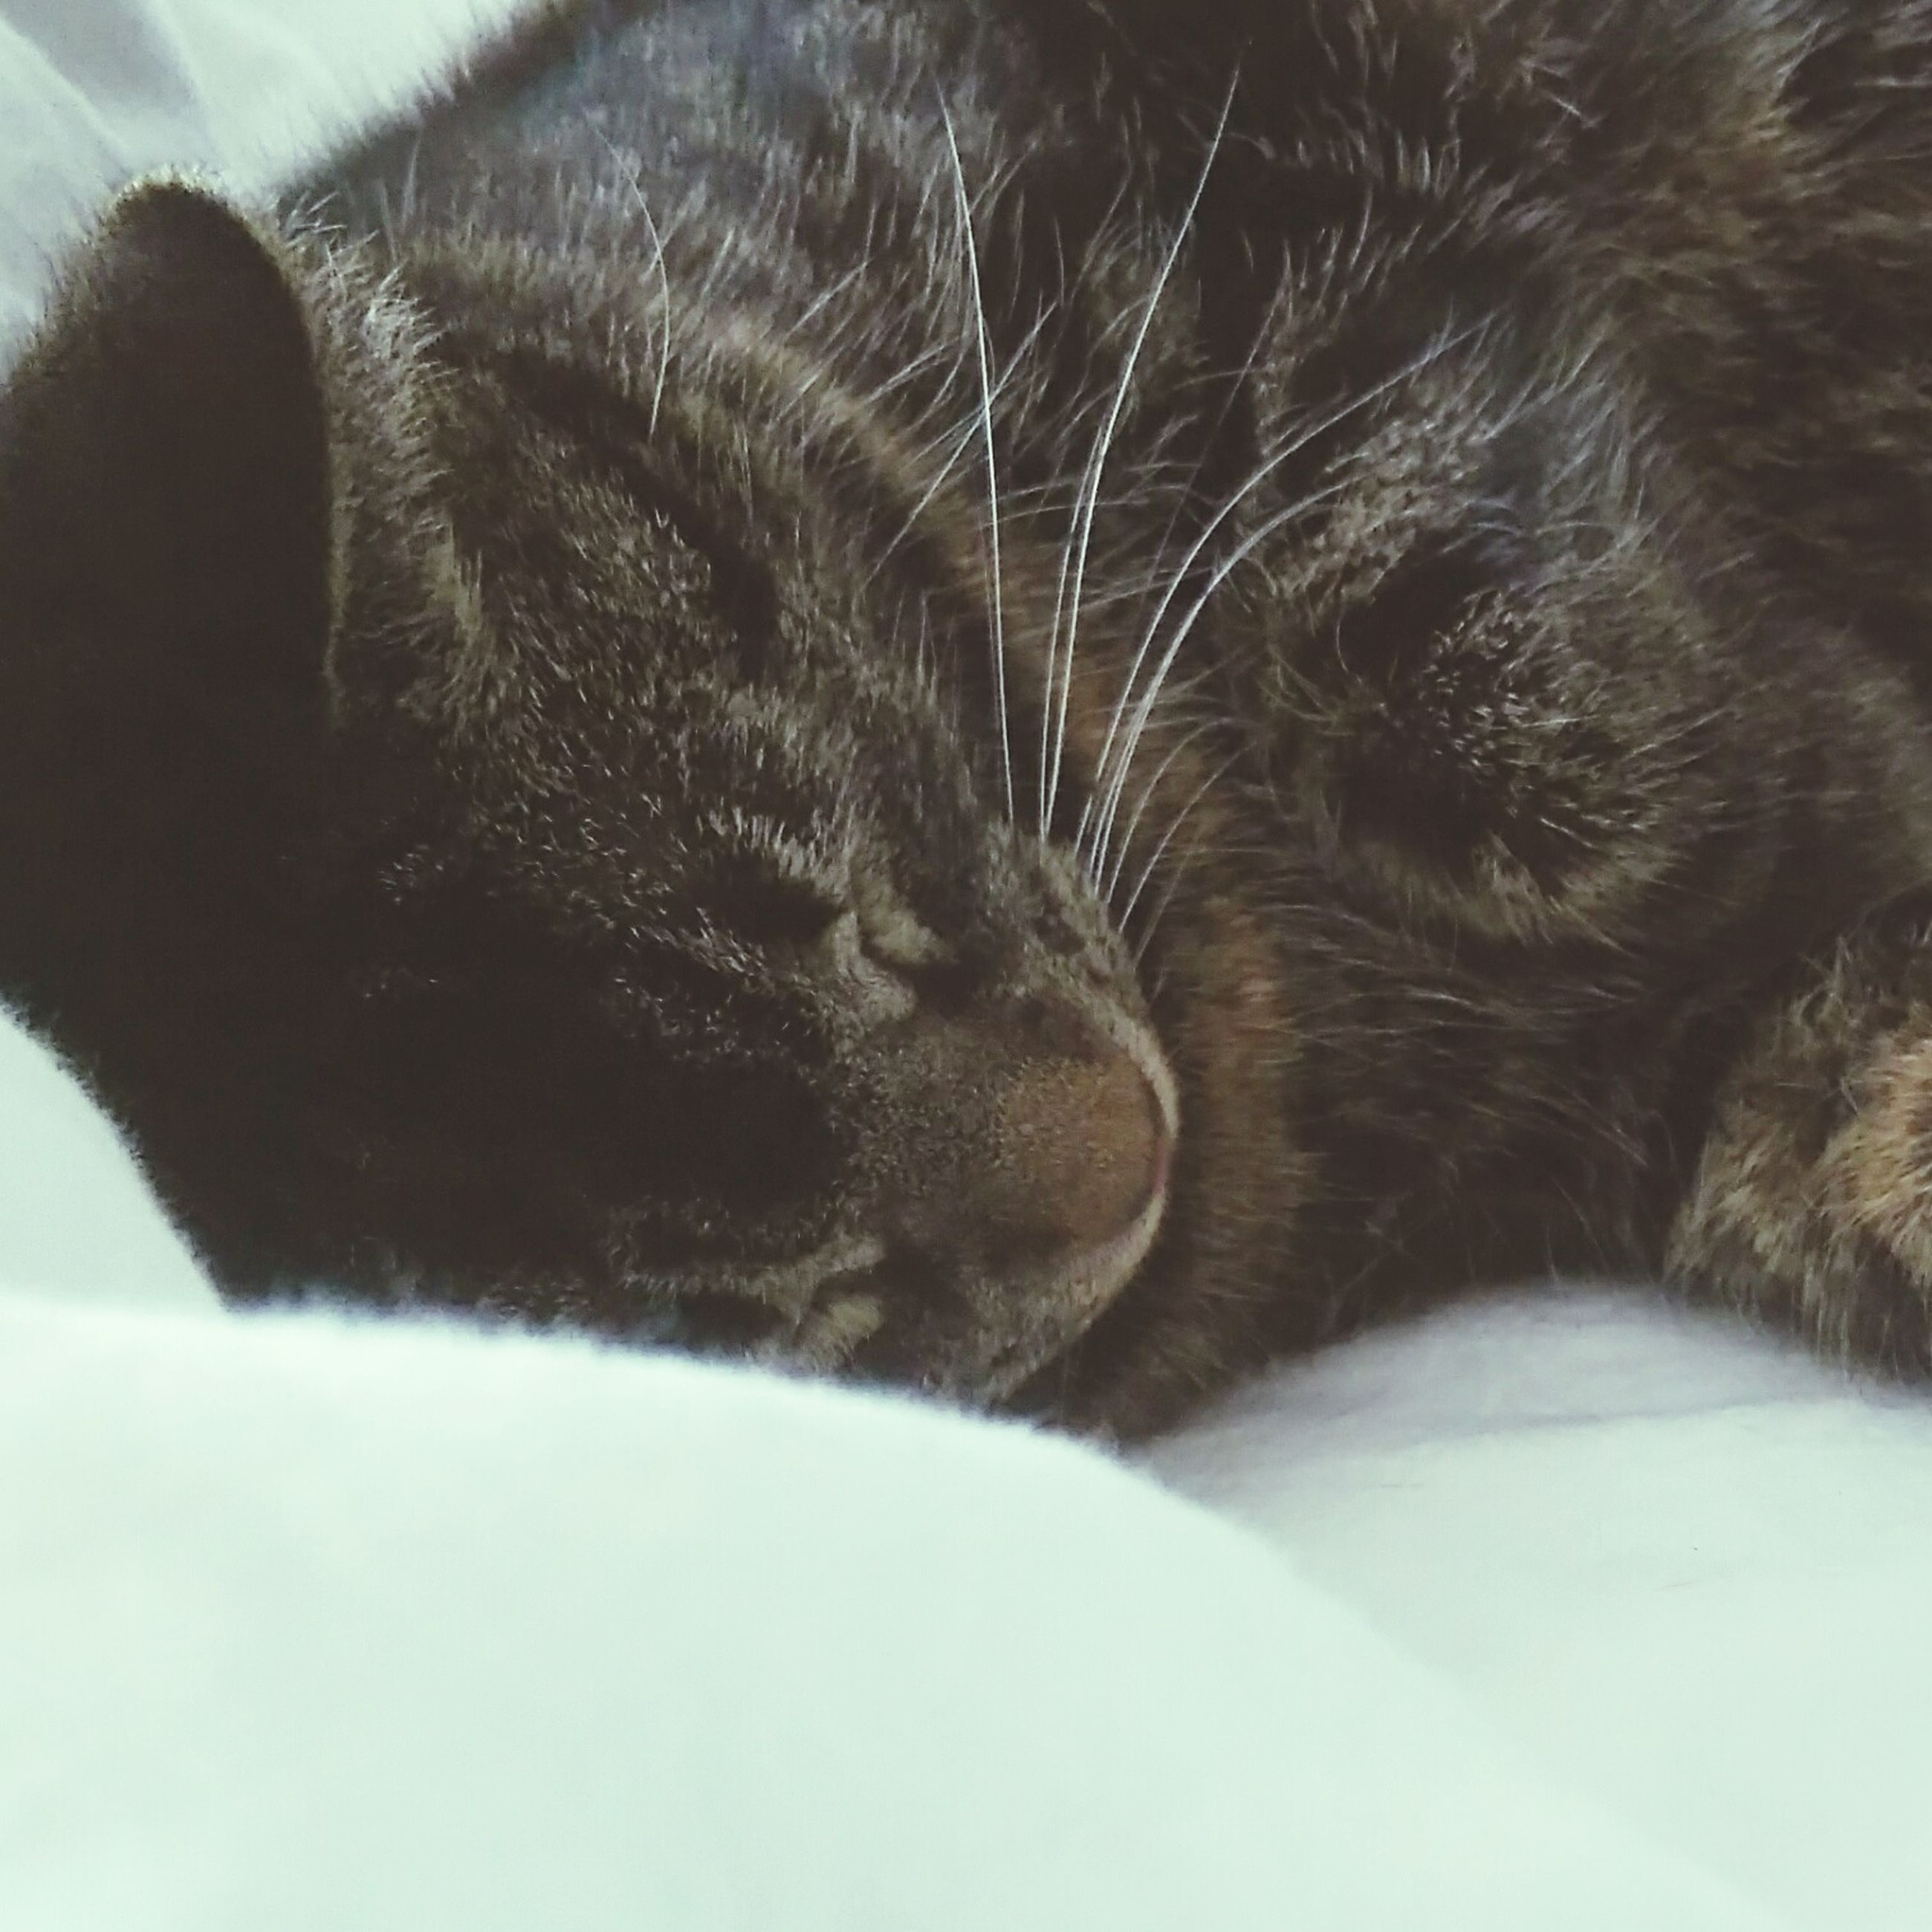 animal themes, one animal, pets, domestic animals, mammal, domestic cat, cat, feline, indoors, relaxation, close-up, whisker, animal head, sleeping, resting, animal body part, lying down, eyes closed, no people, zoology